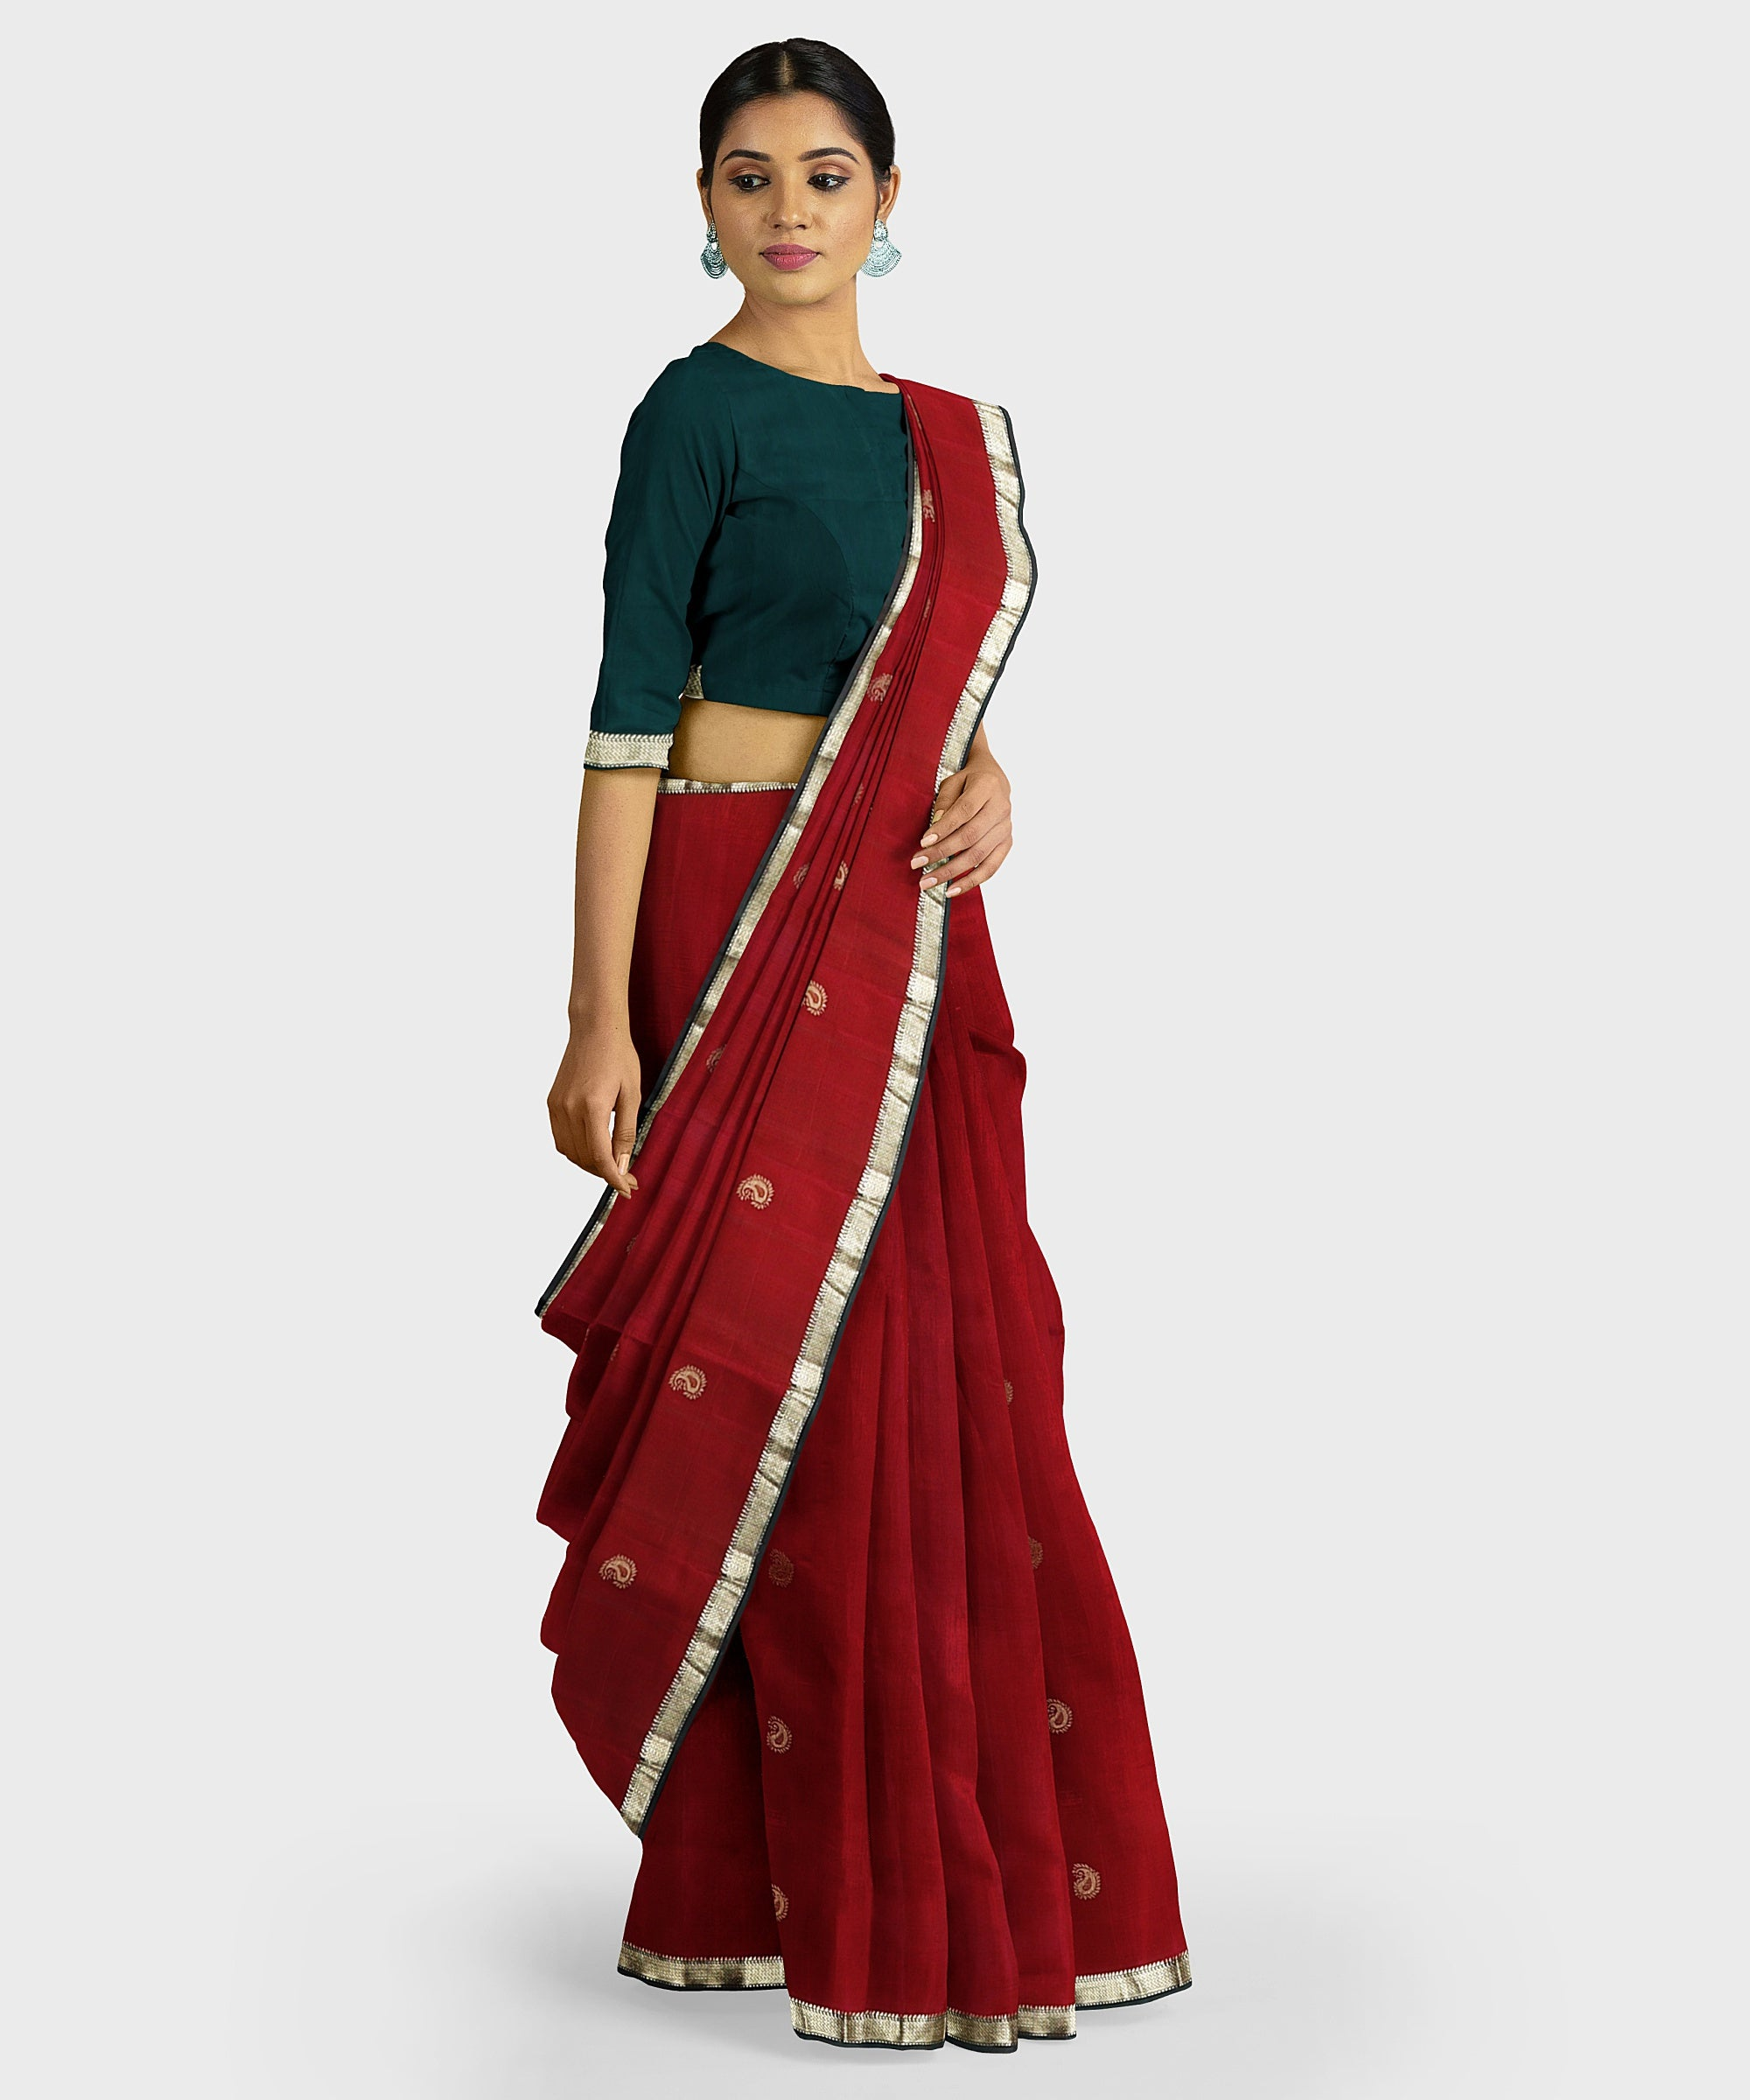 Maroon and teal green Kodiyala silk handloom saree